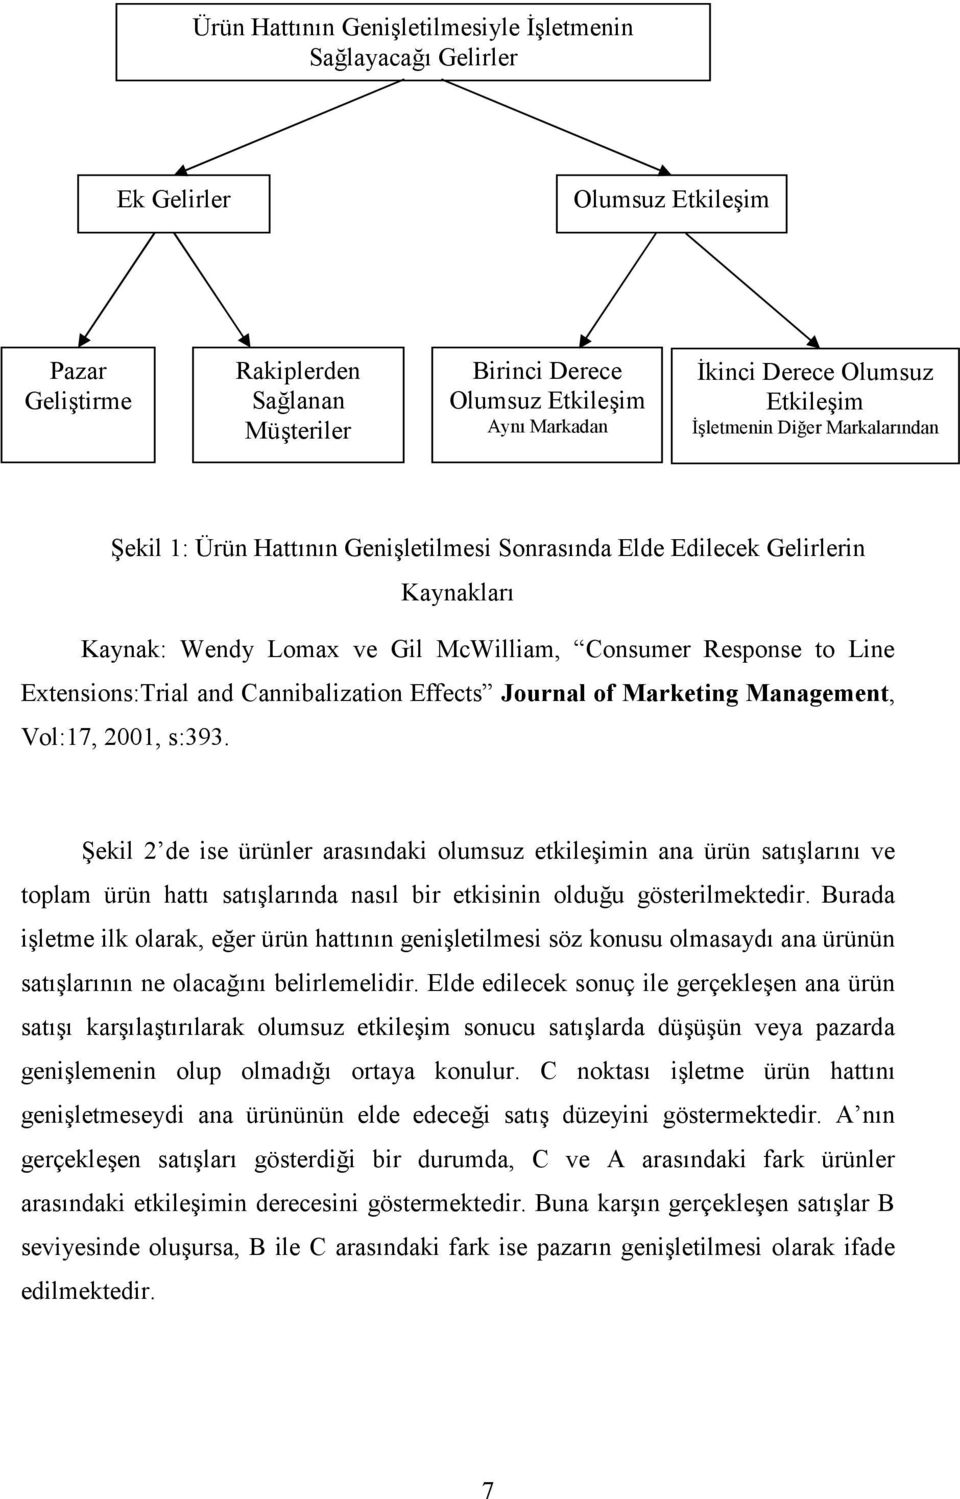 Extensions:Trial and Cannibalization Effects Journal of Marketing Management, Vol:17, 2001, s:393.